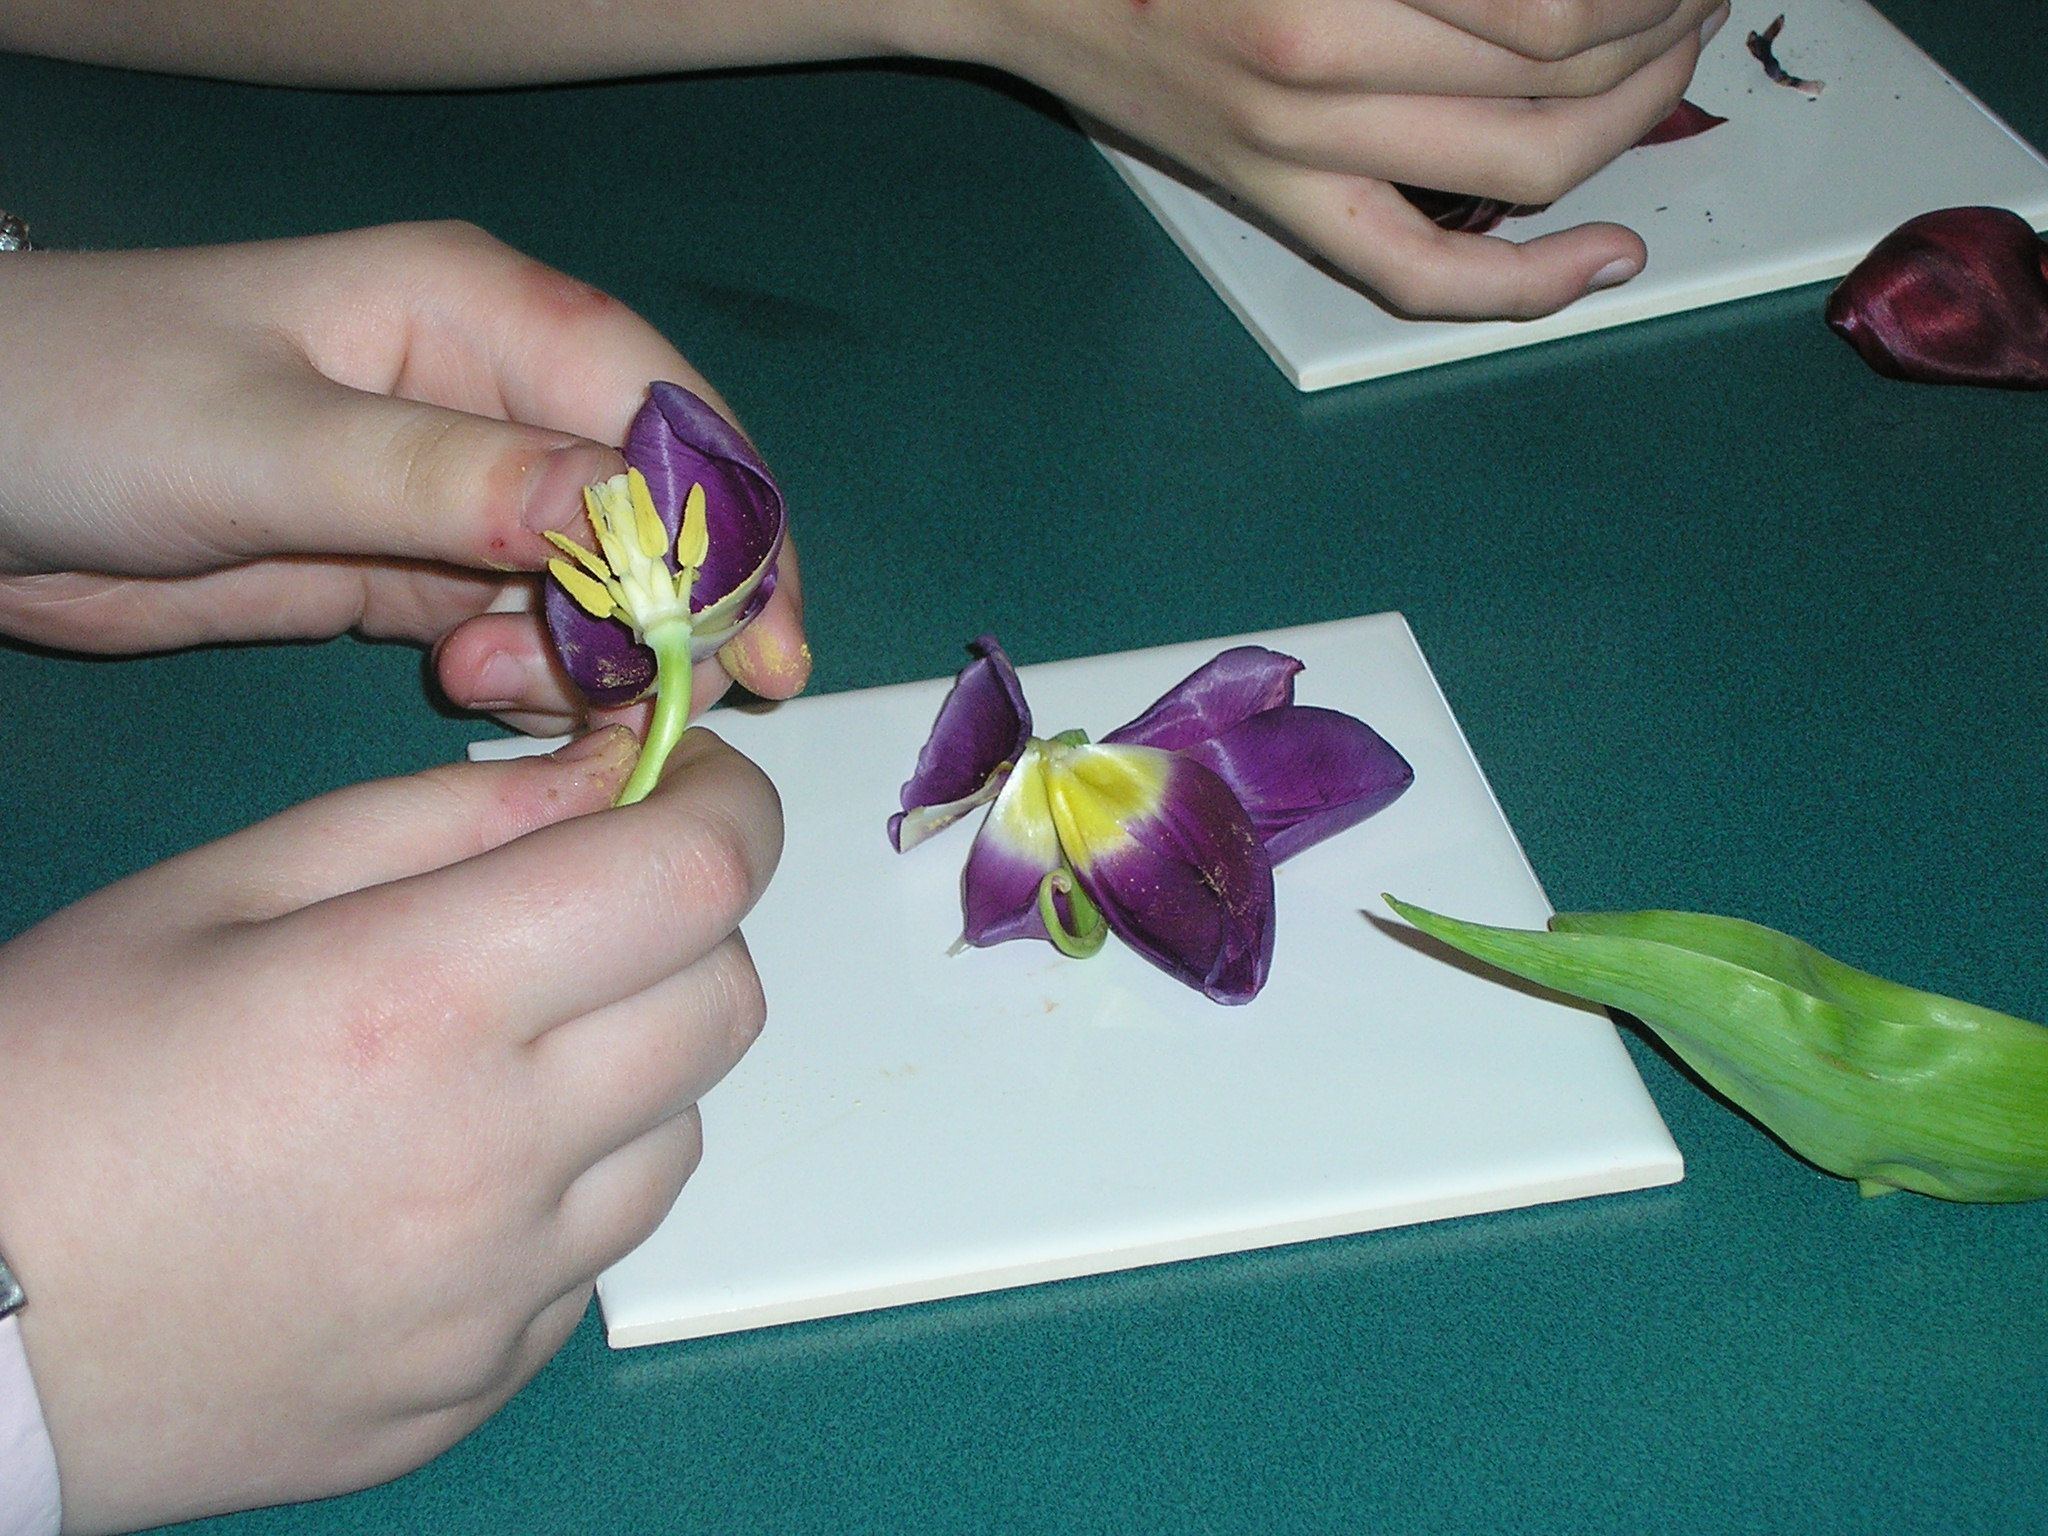 The Life of Preston Lodge PLants week one – Flower Dissection Worksheet